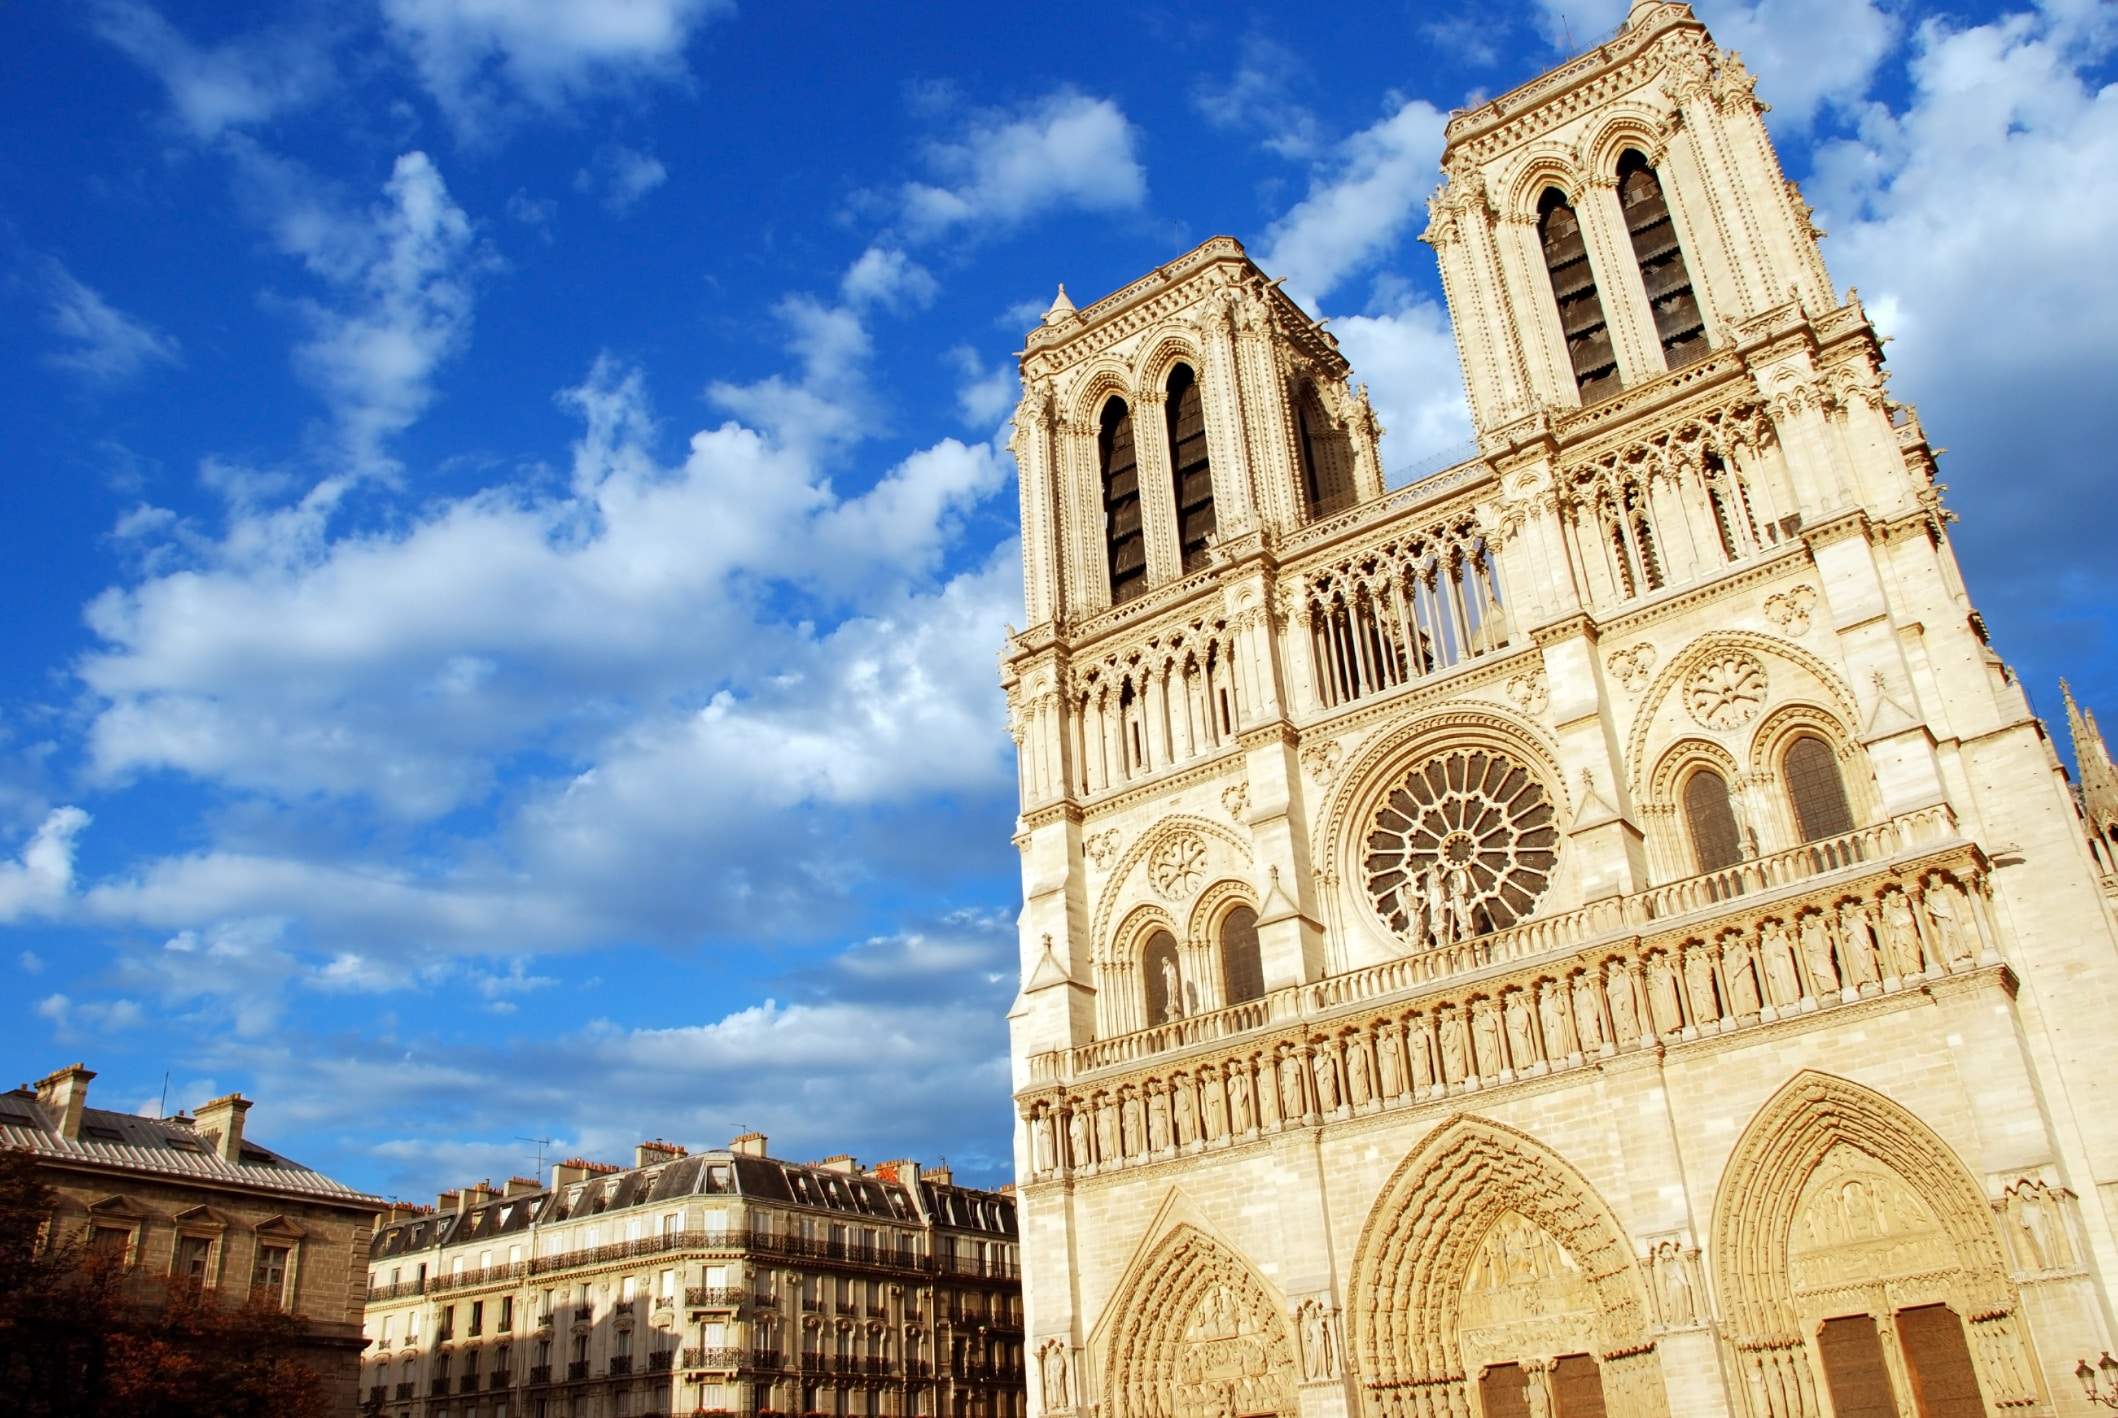 Hop on Hop off bus and Notre Dame cathedral